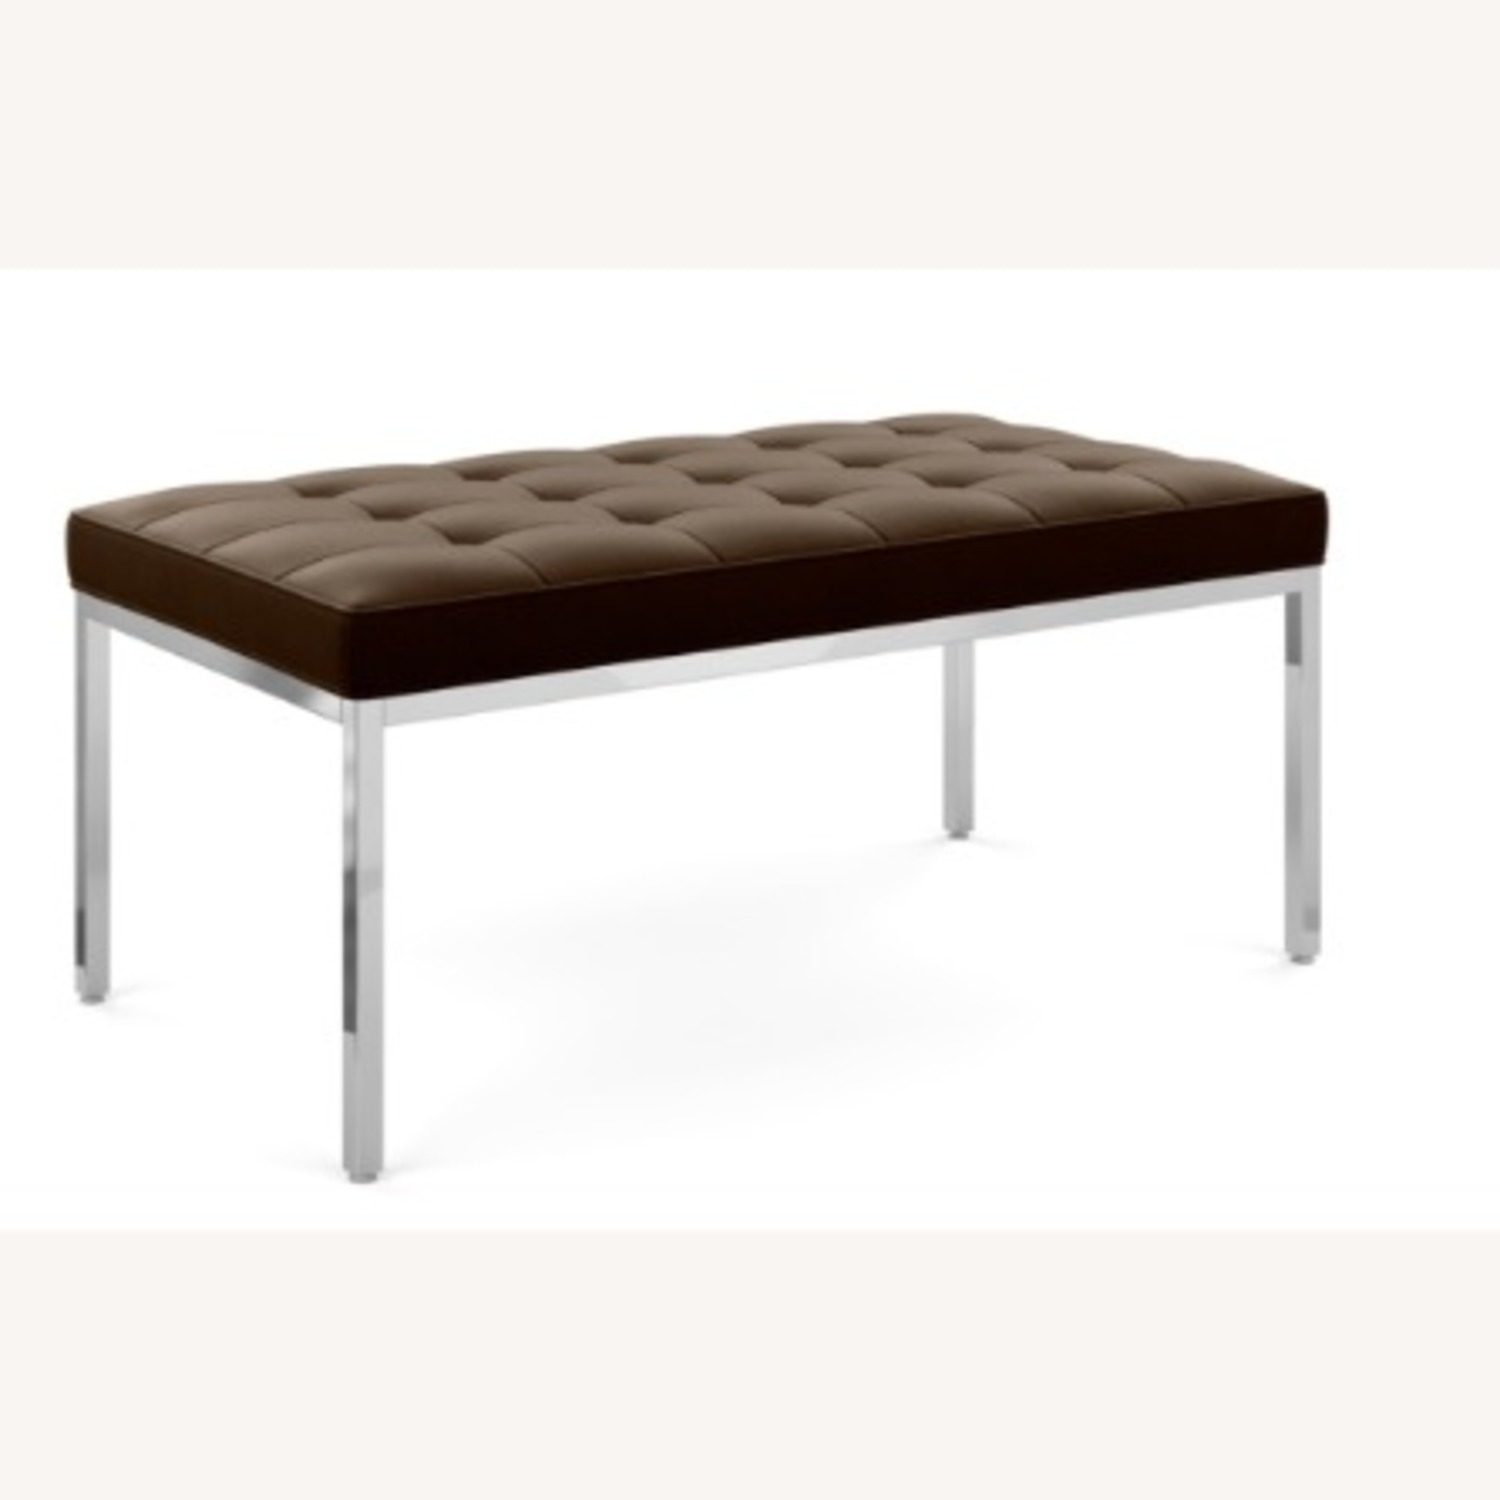 Knoll Bronze Florence Bench - image-1